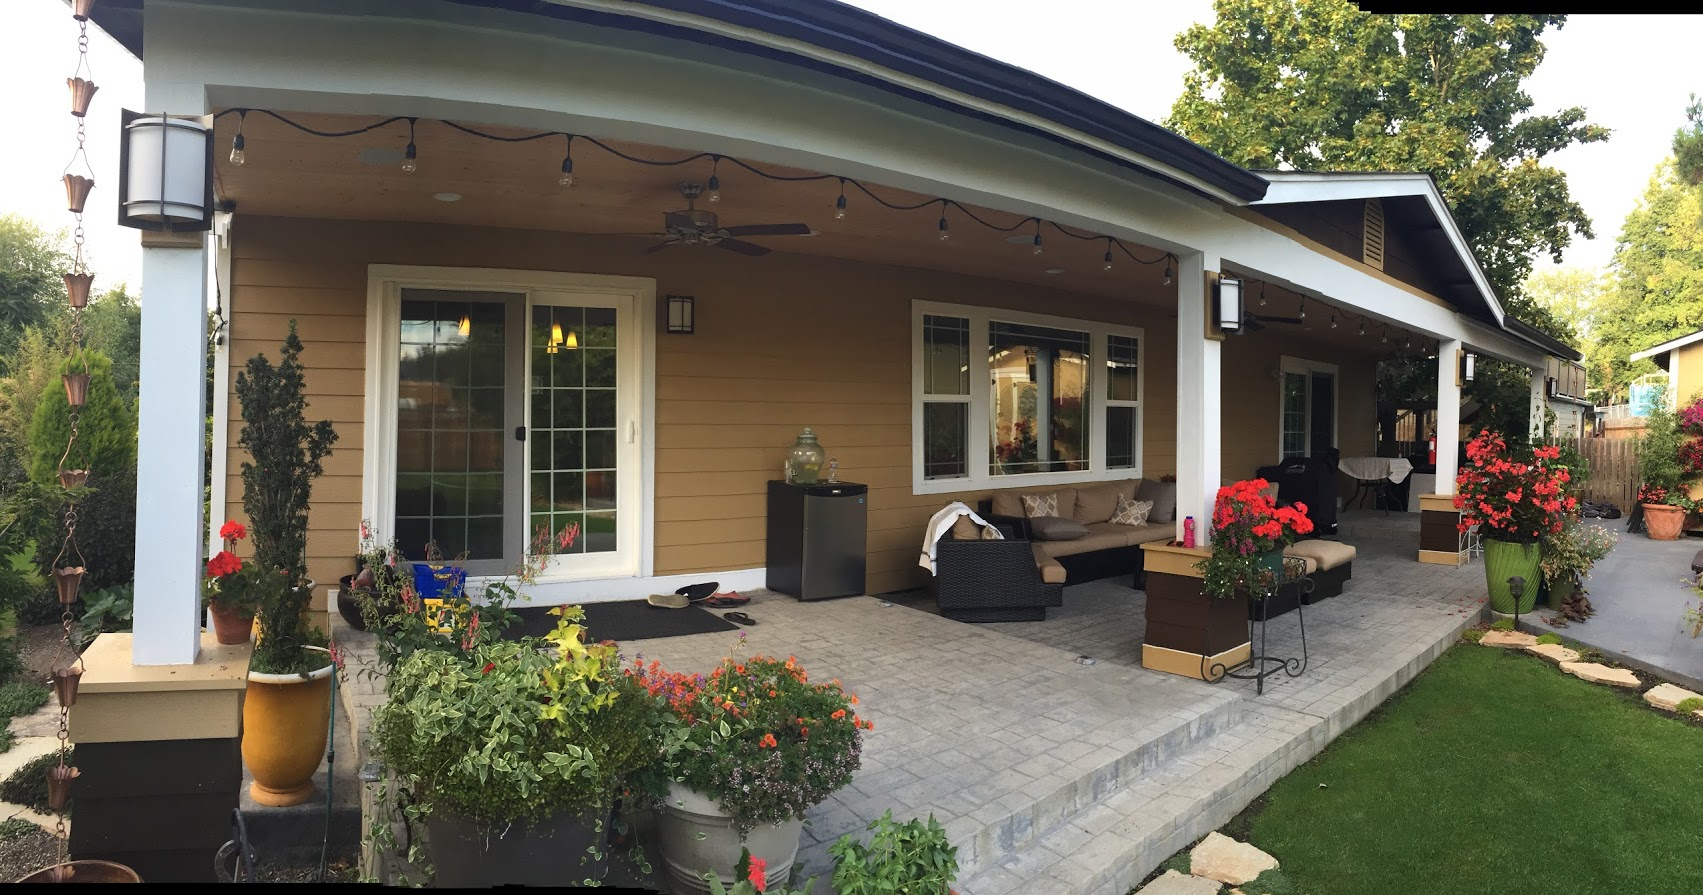 Big rambler large covered porch and why wouldn 39 t you add for House with covered porch